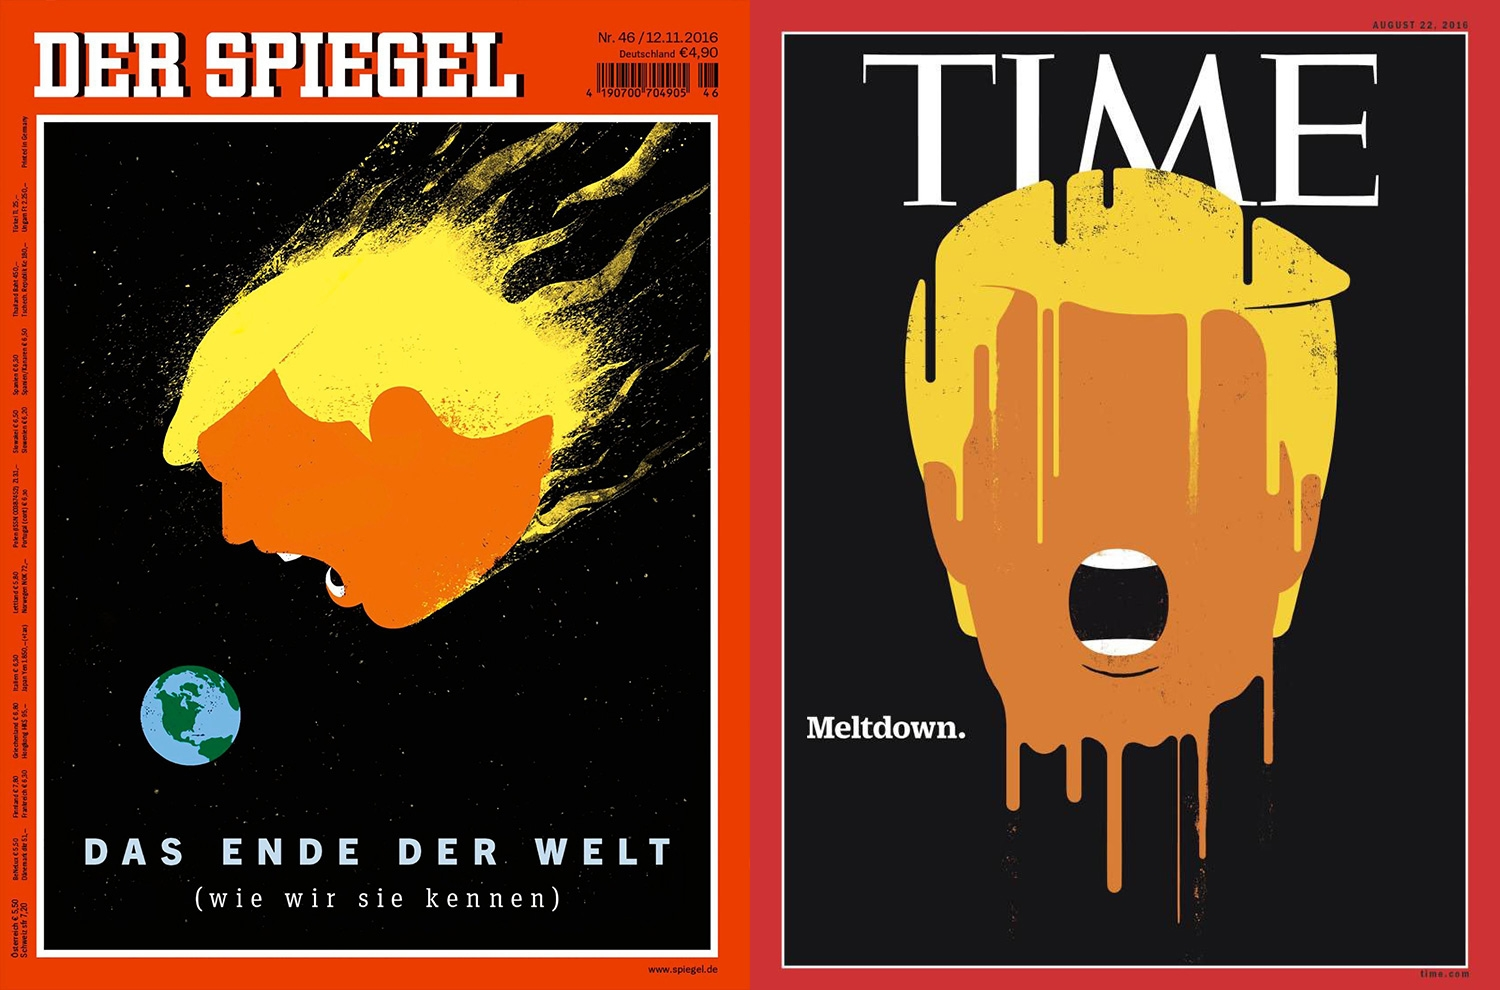 Spirgel Online The Magazine Cover Art Of Donald Trump Causing Headlines